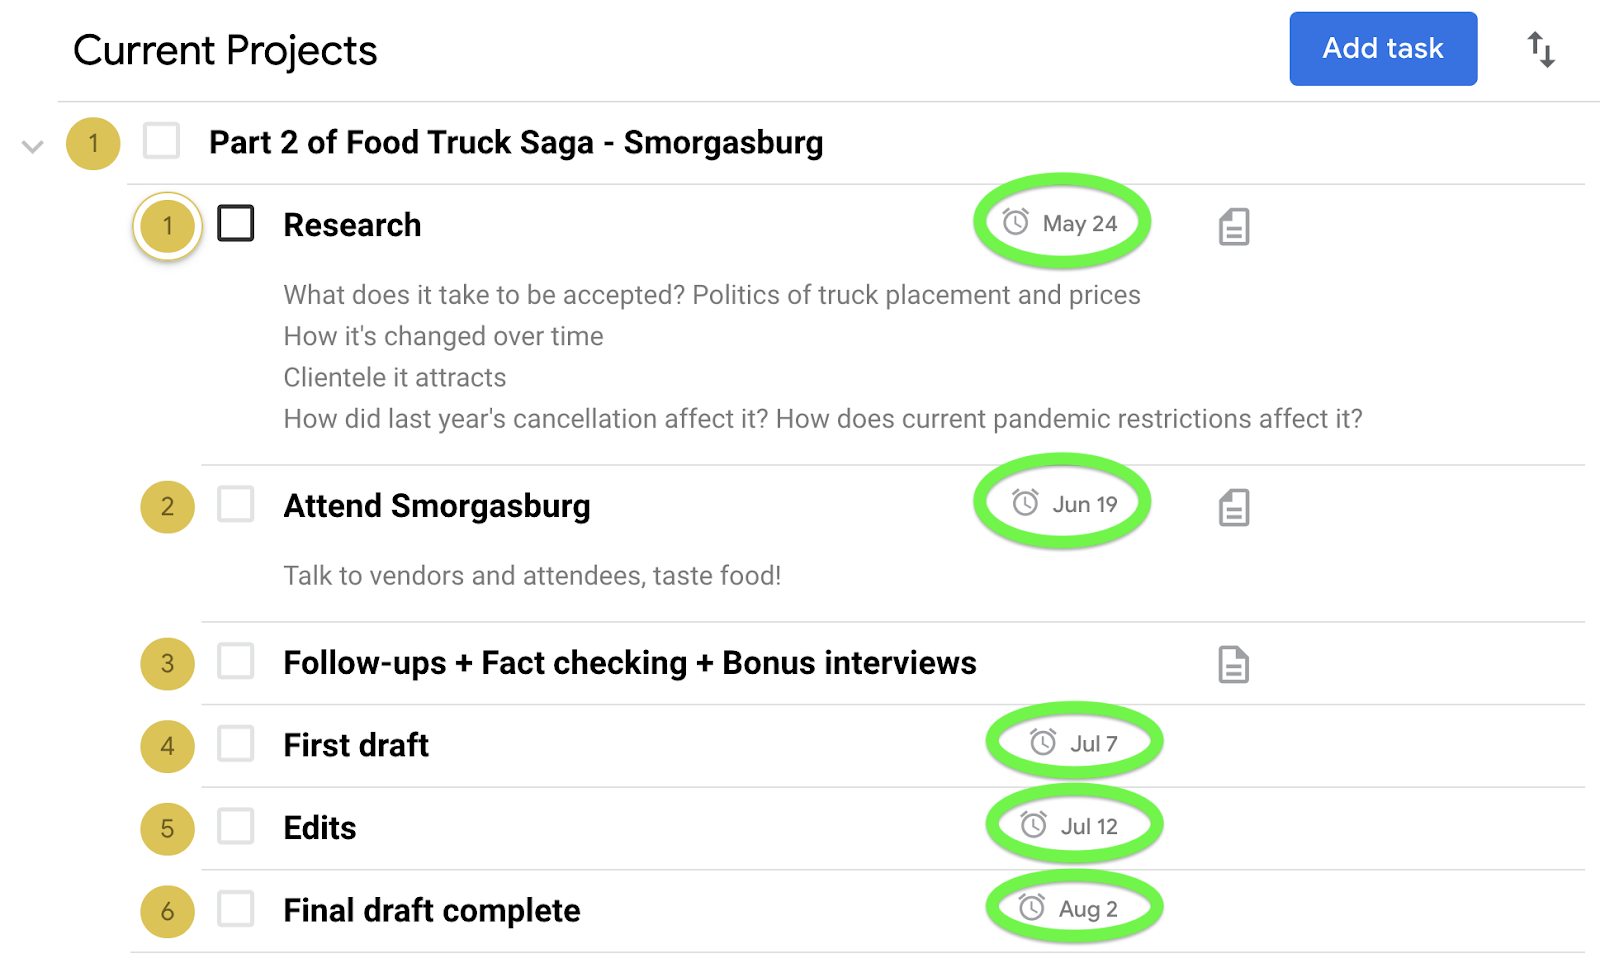 Use subtasks to set check-in dates for the main task